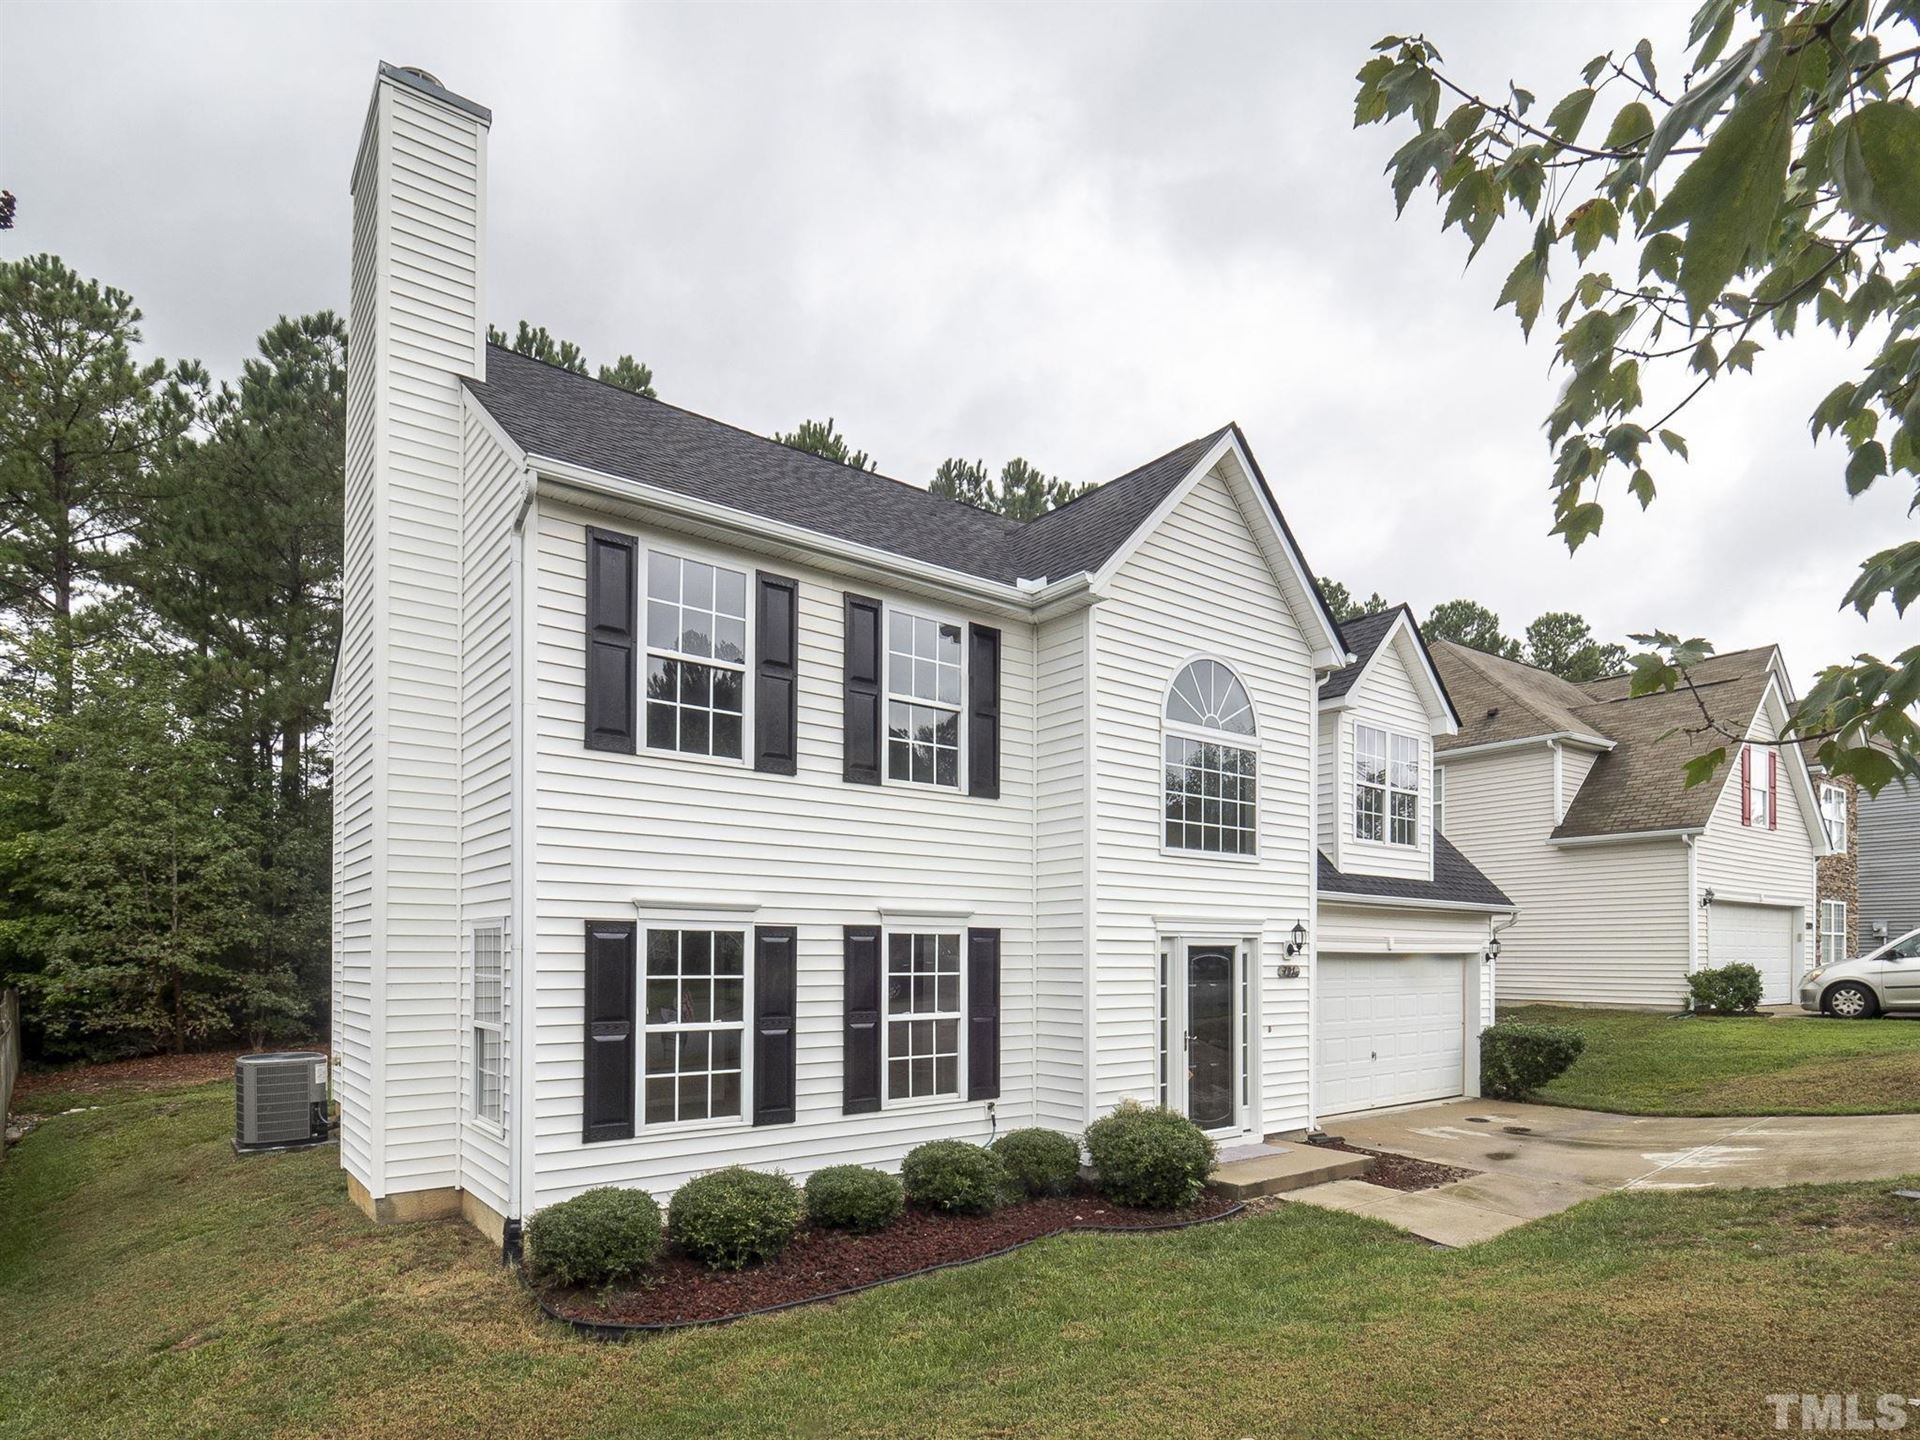 Photo of 701 Holly Thorne Trace, Holly Springs, NC 27540 (MLS # 2408729)